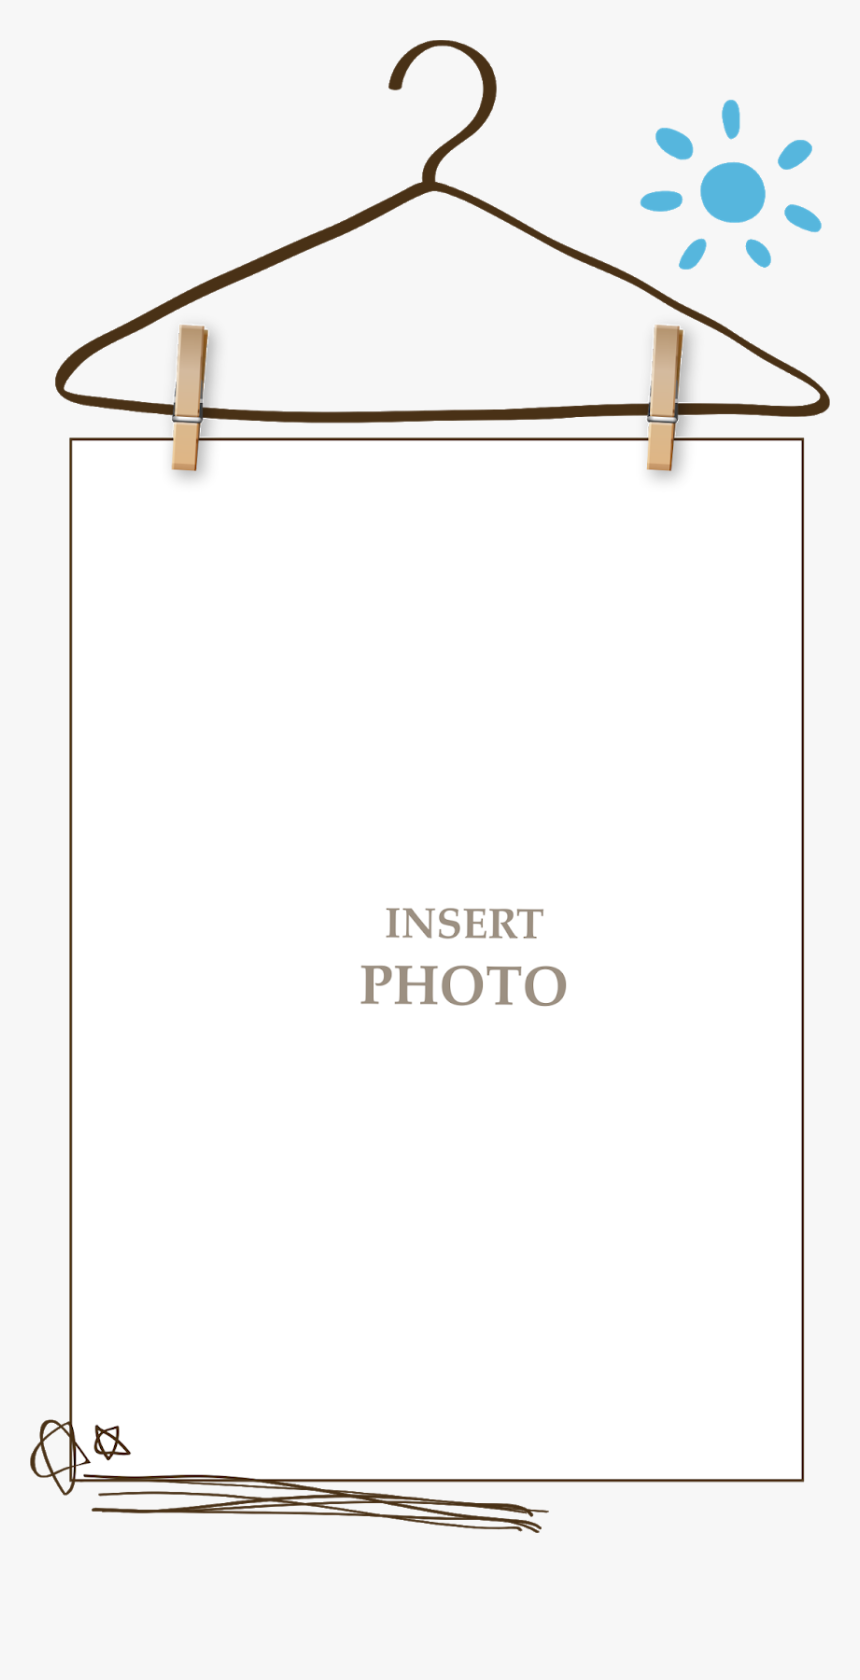 Photo Frame Png Hd - Paper, Transparent Png, Free Download